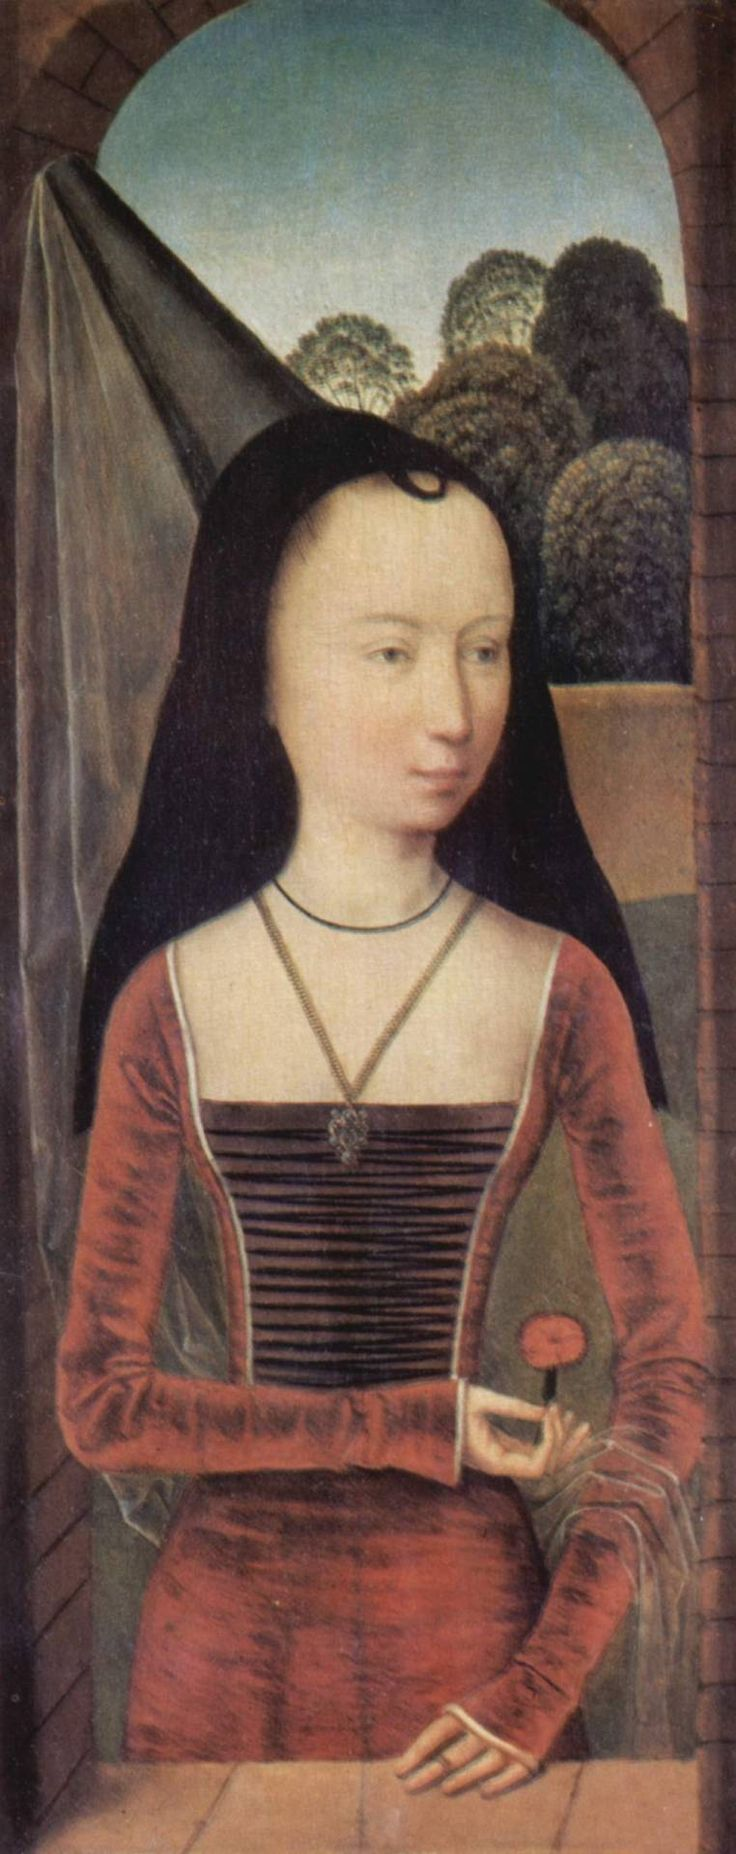 Young woman in a conical hennin with black velvet lappets or brim and a sheer veil, from the Allegory of True Love, by Hans Memling, 1485–90